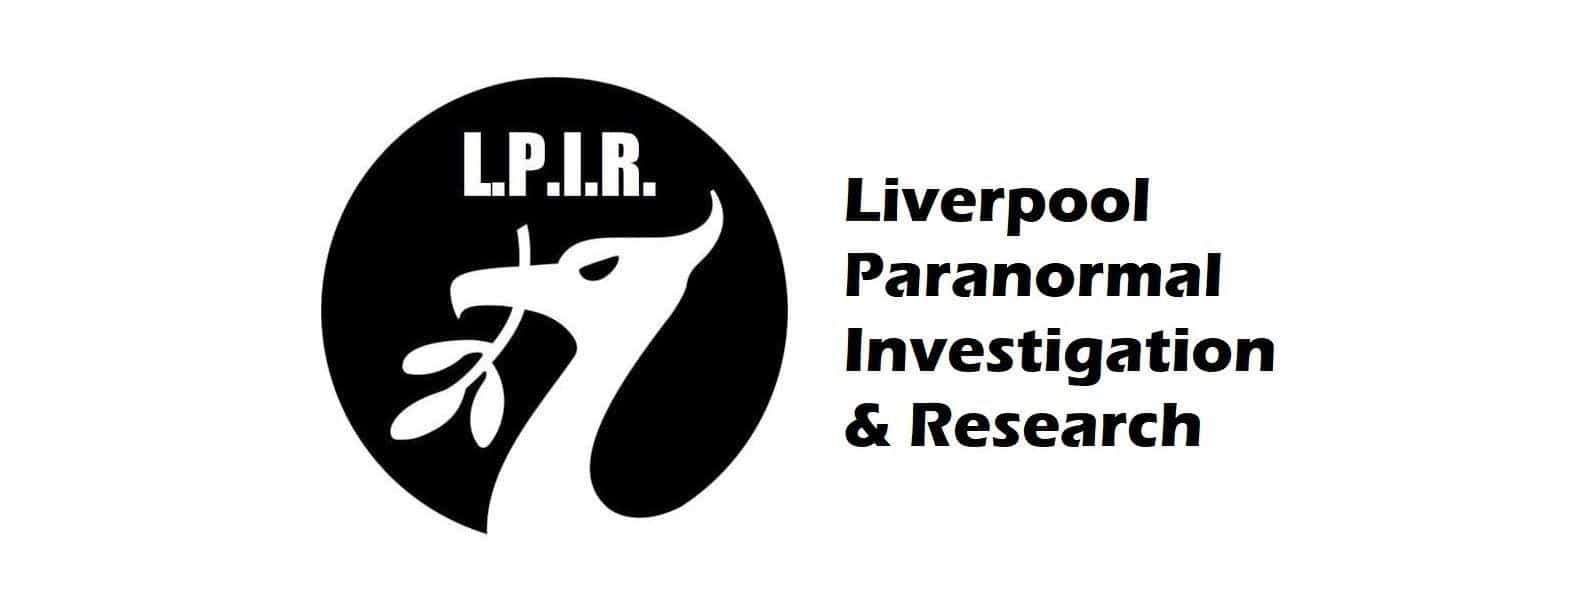 liverpool paranormal investigation and research